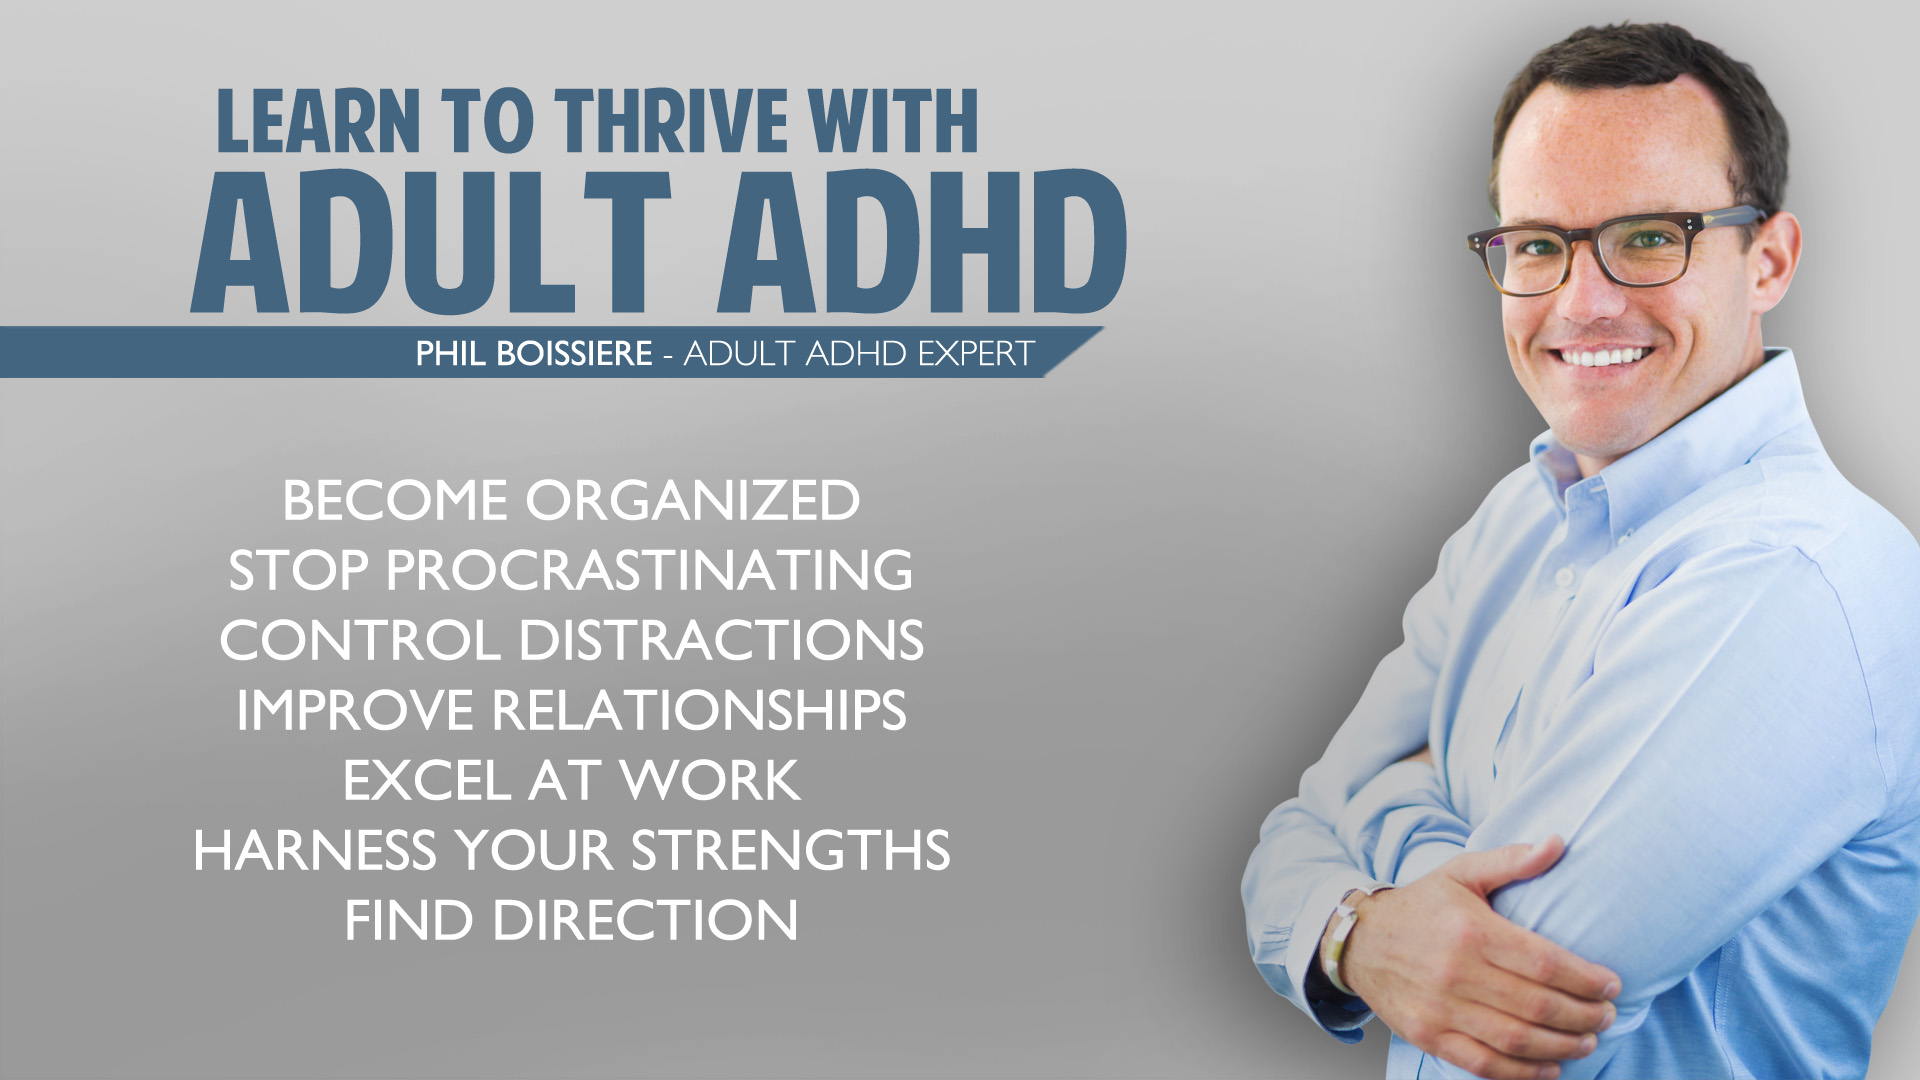 Adult ADHD Video Series